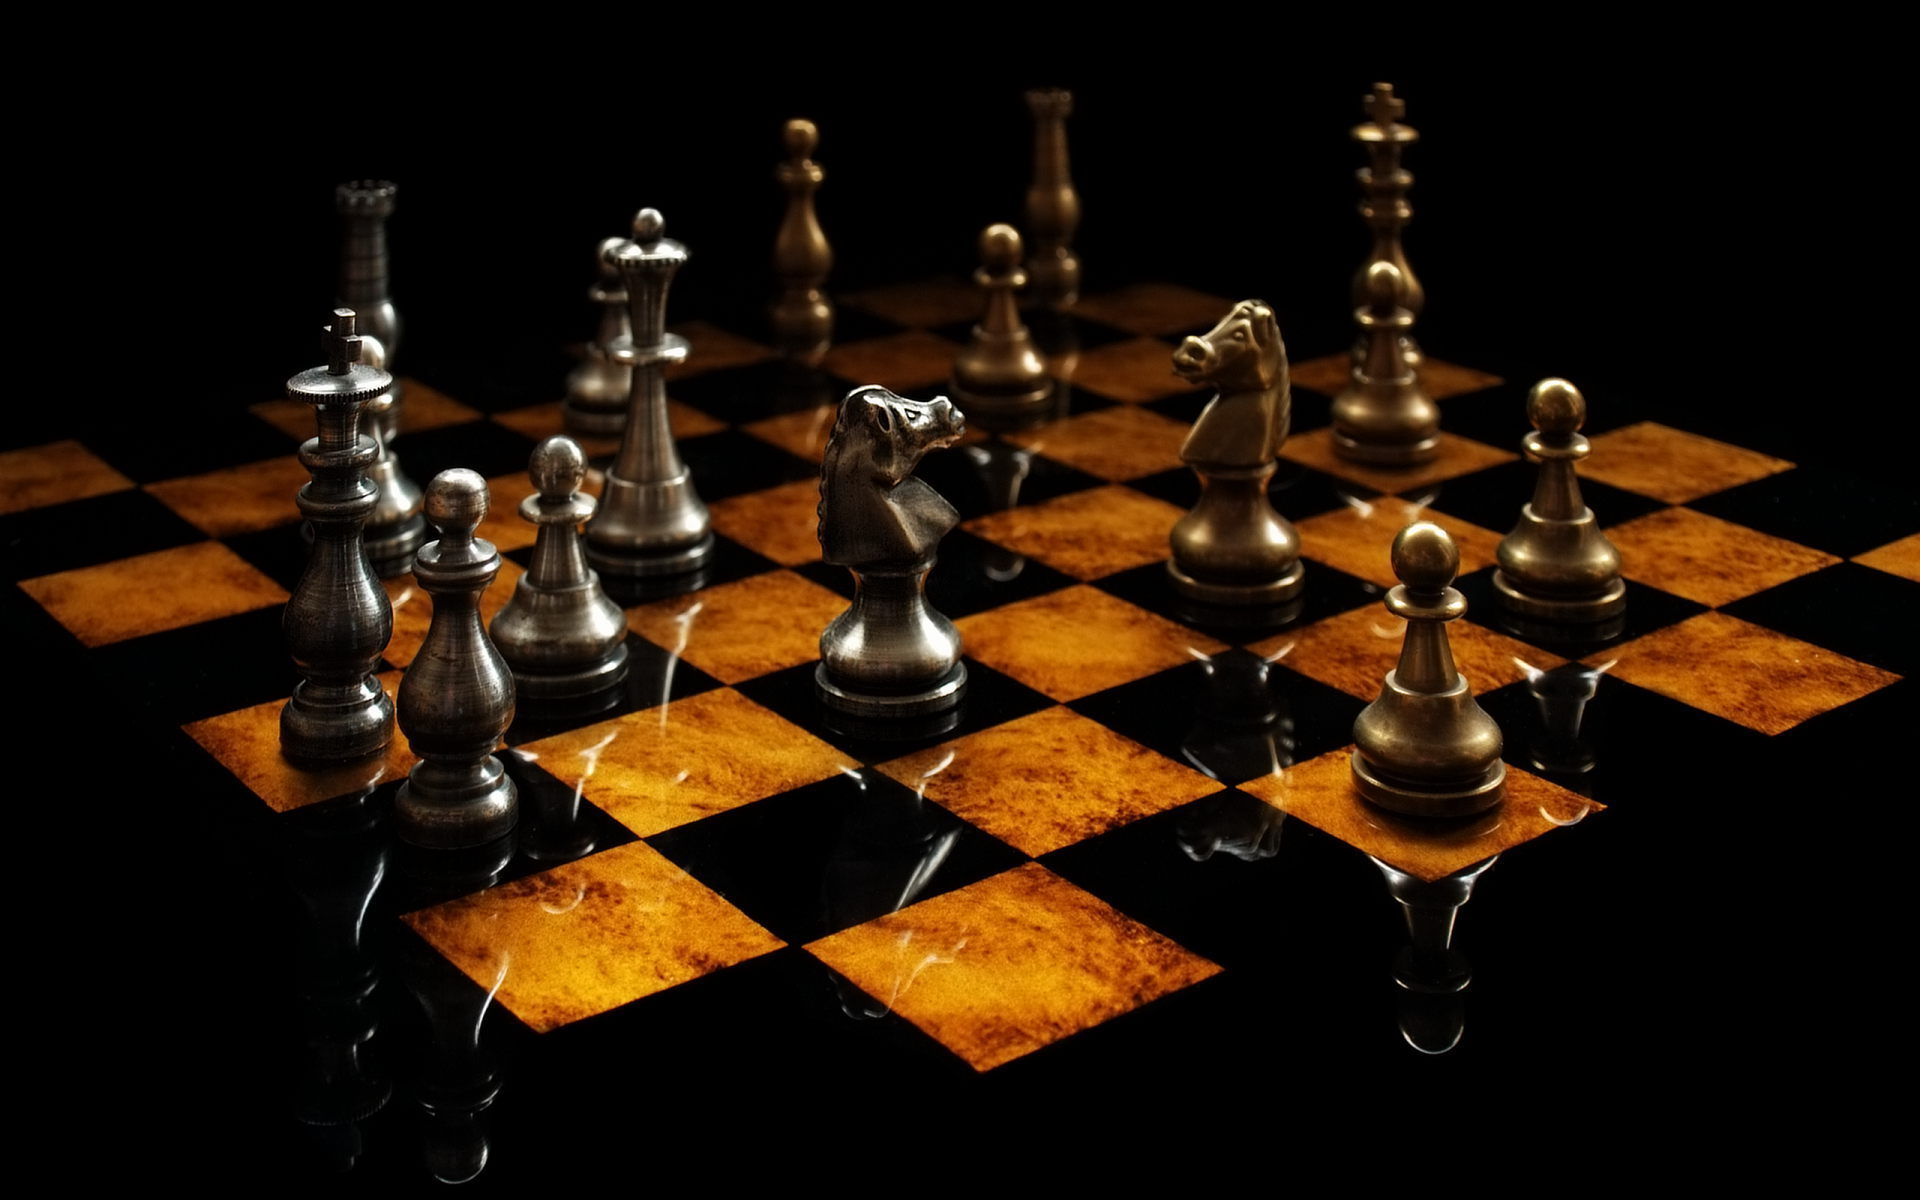 3D Chess Game Picture HD Wallpaper For Your PC Desktop ...  3D Chess Game P...